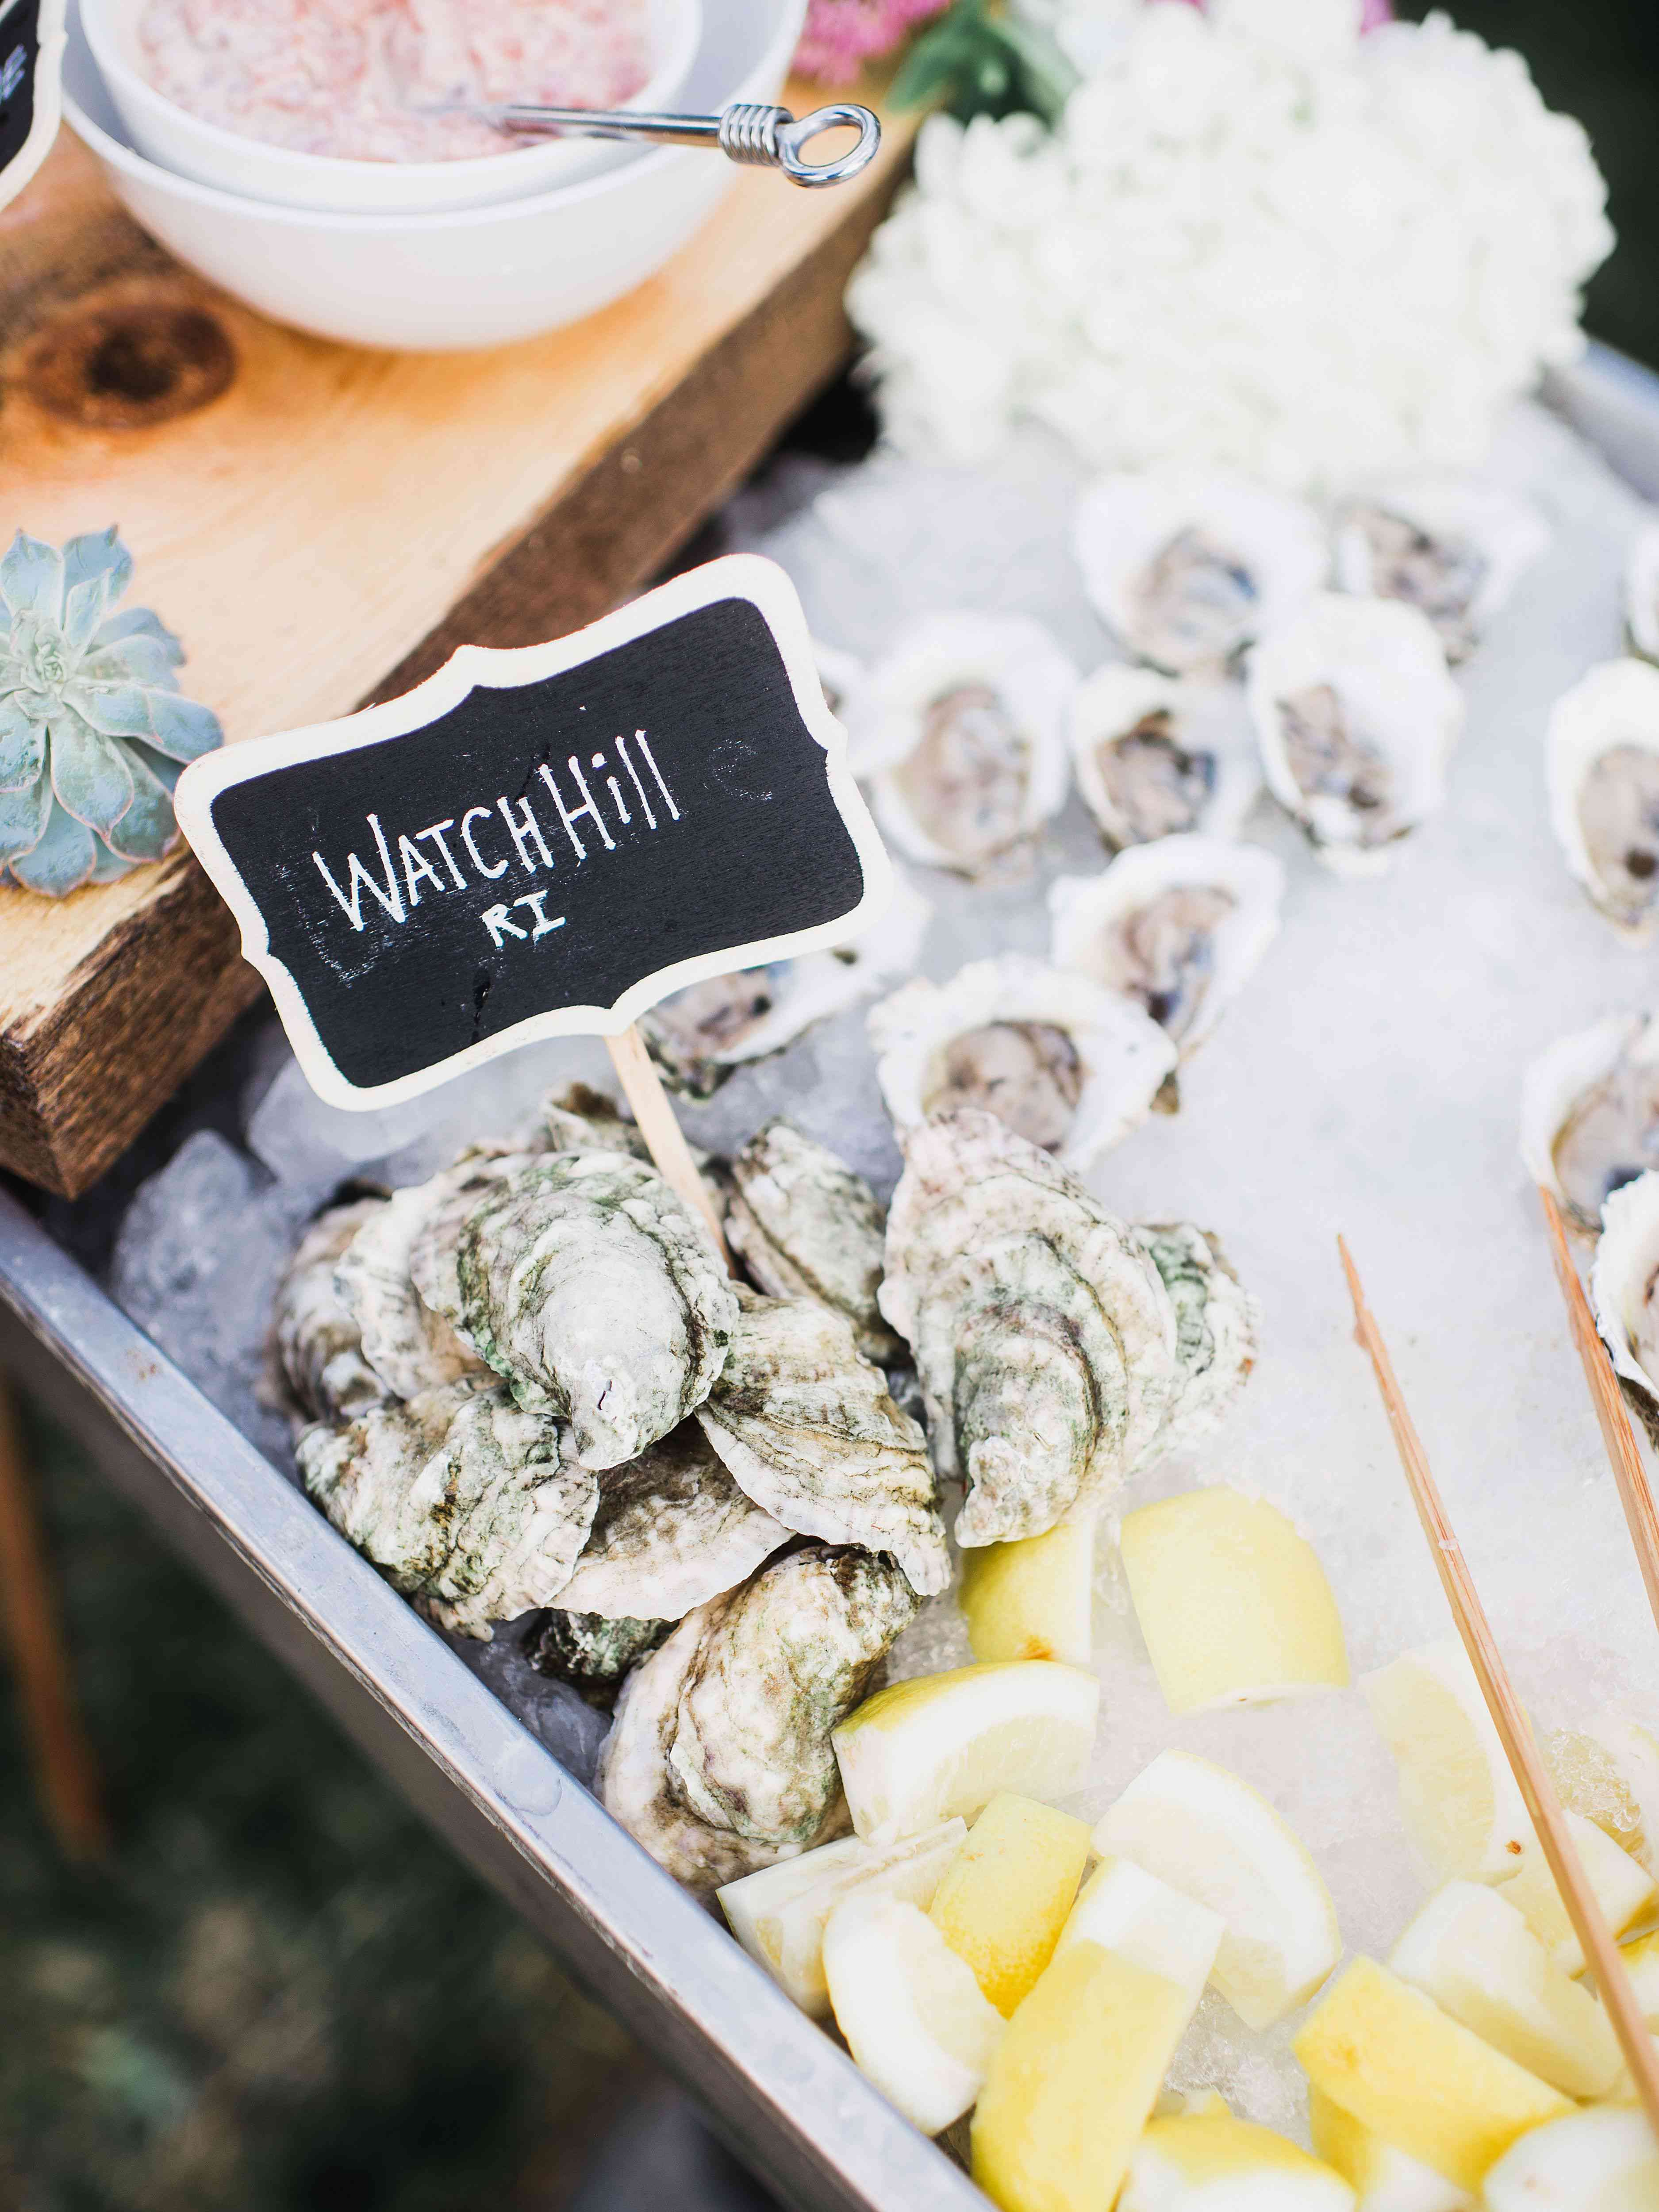 A tray of local oysters